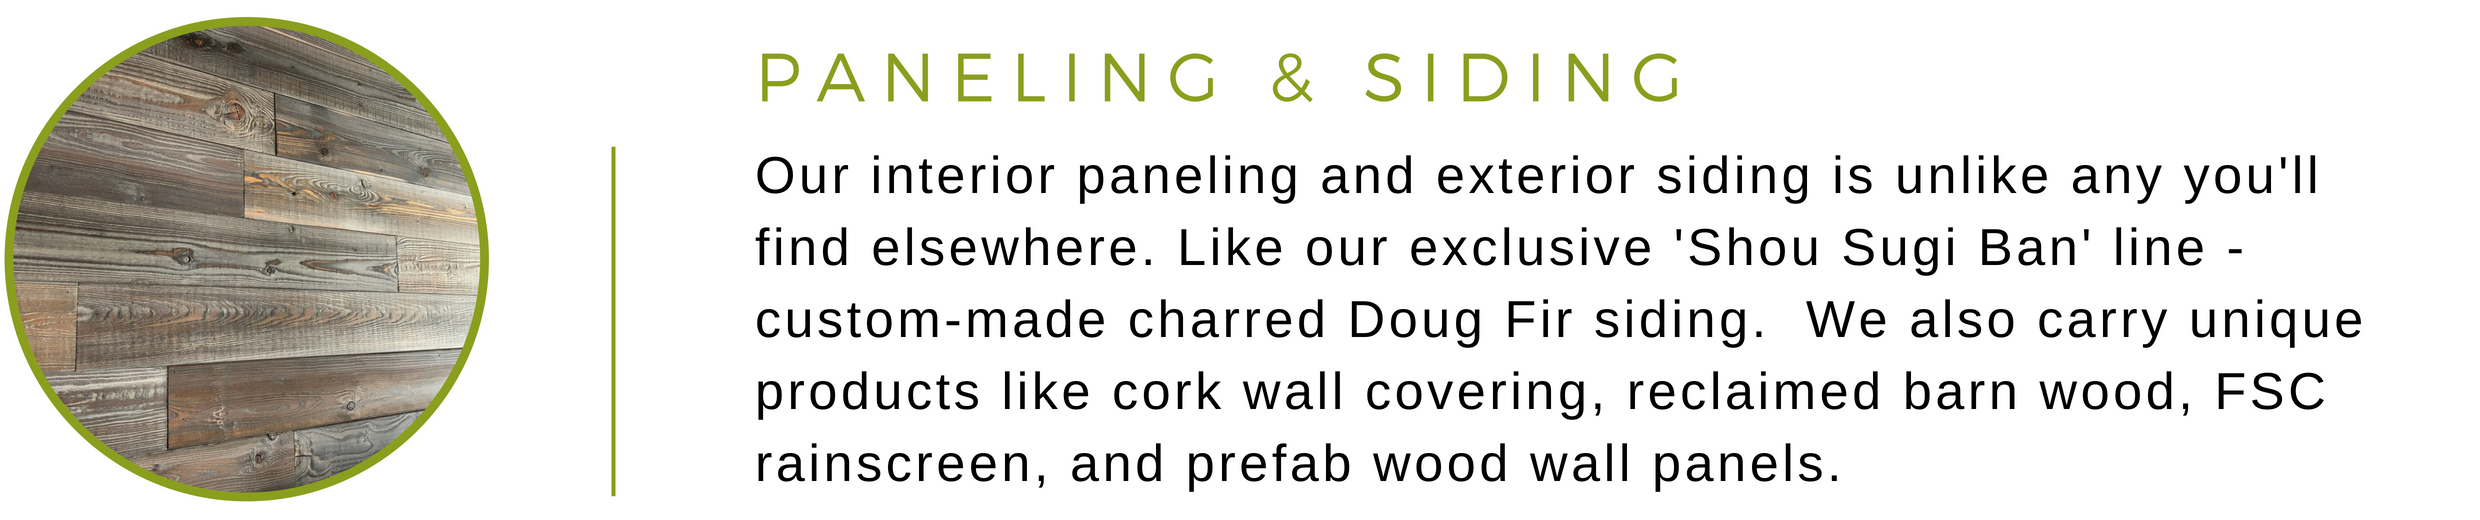 Eco Friendly Paneling Siding And Wall Coverings